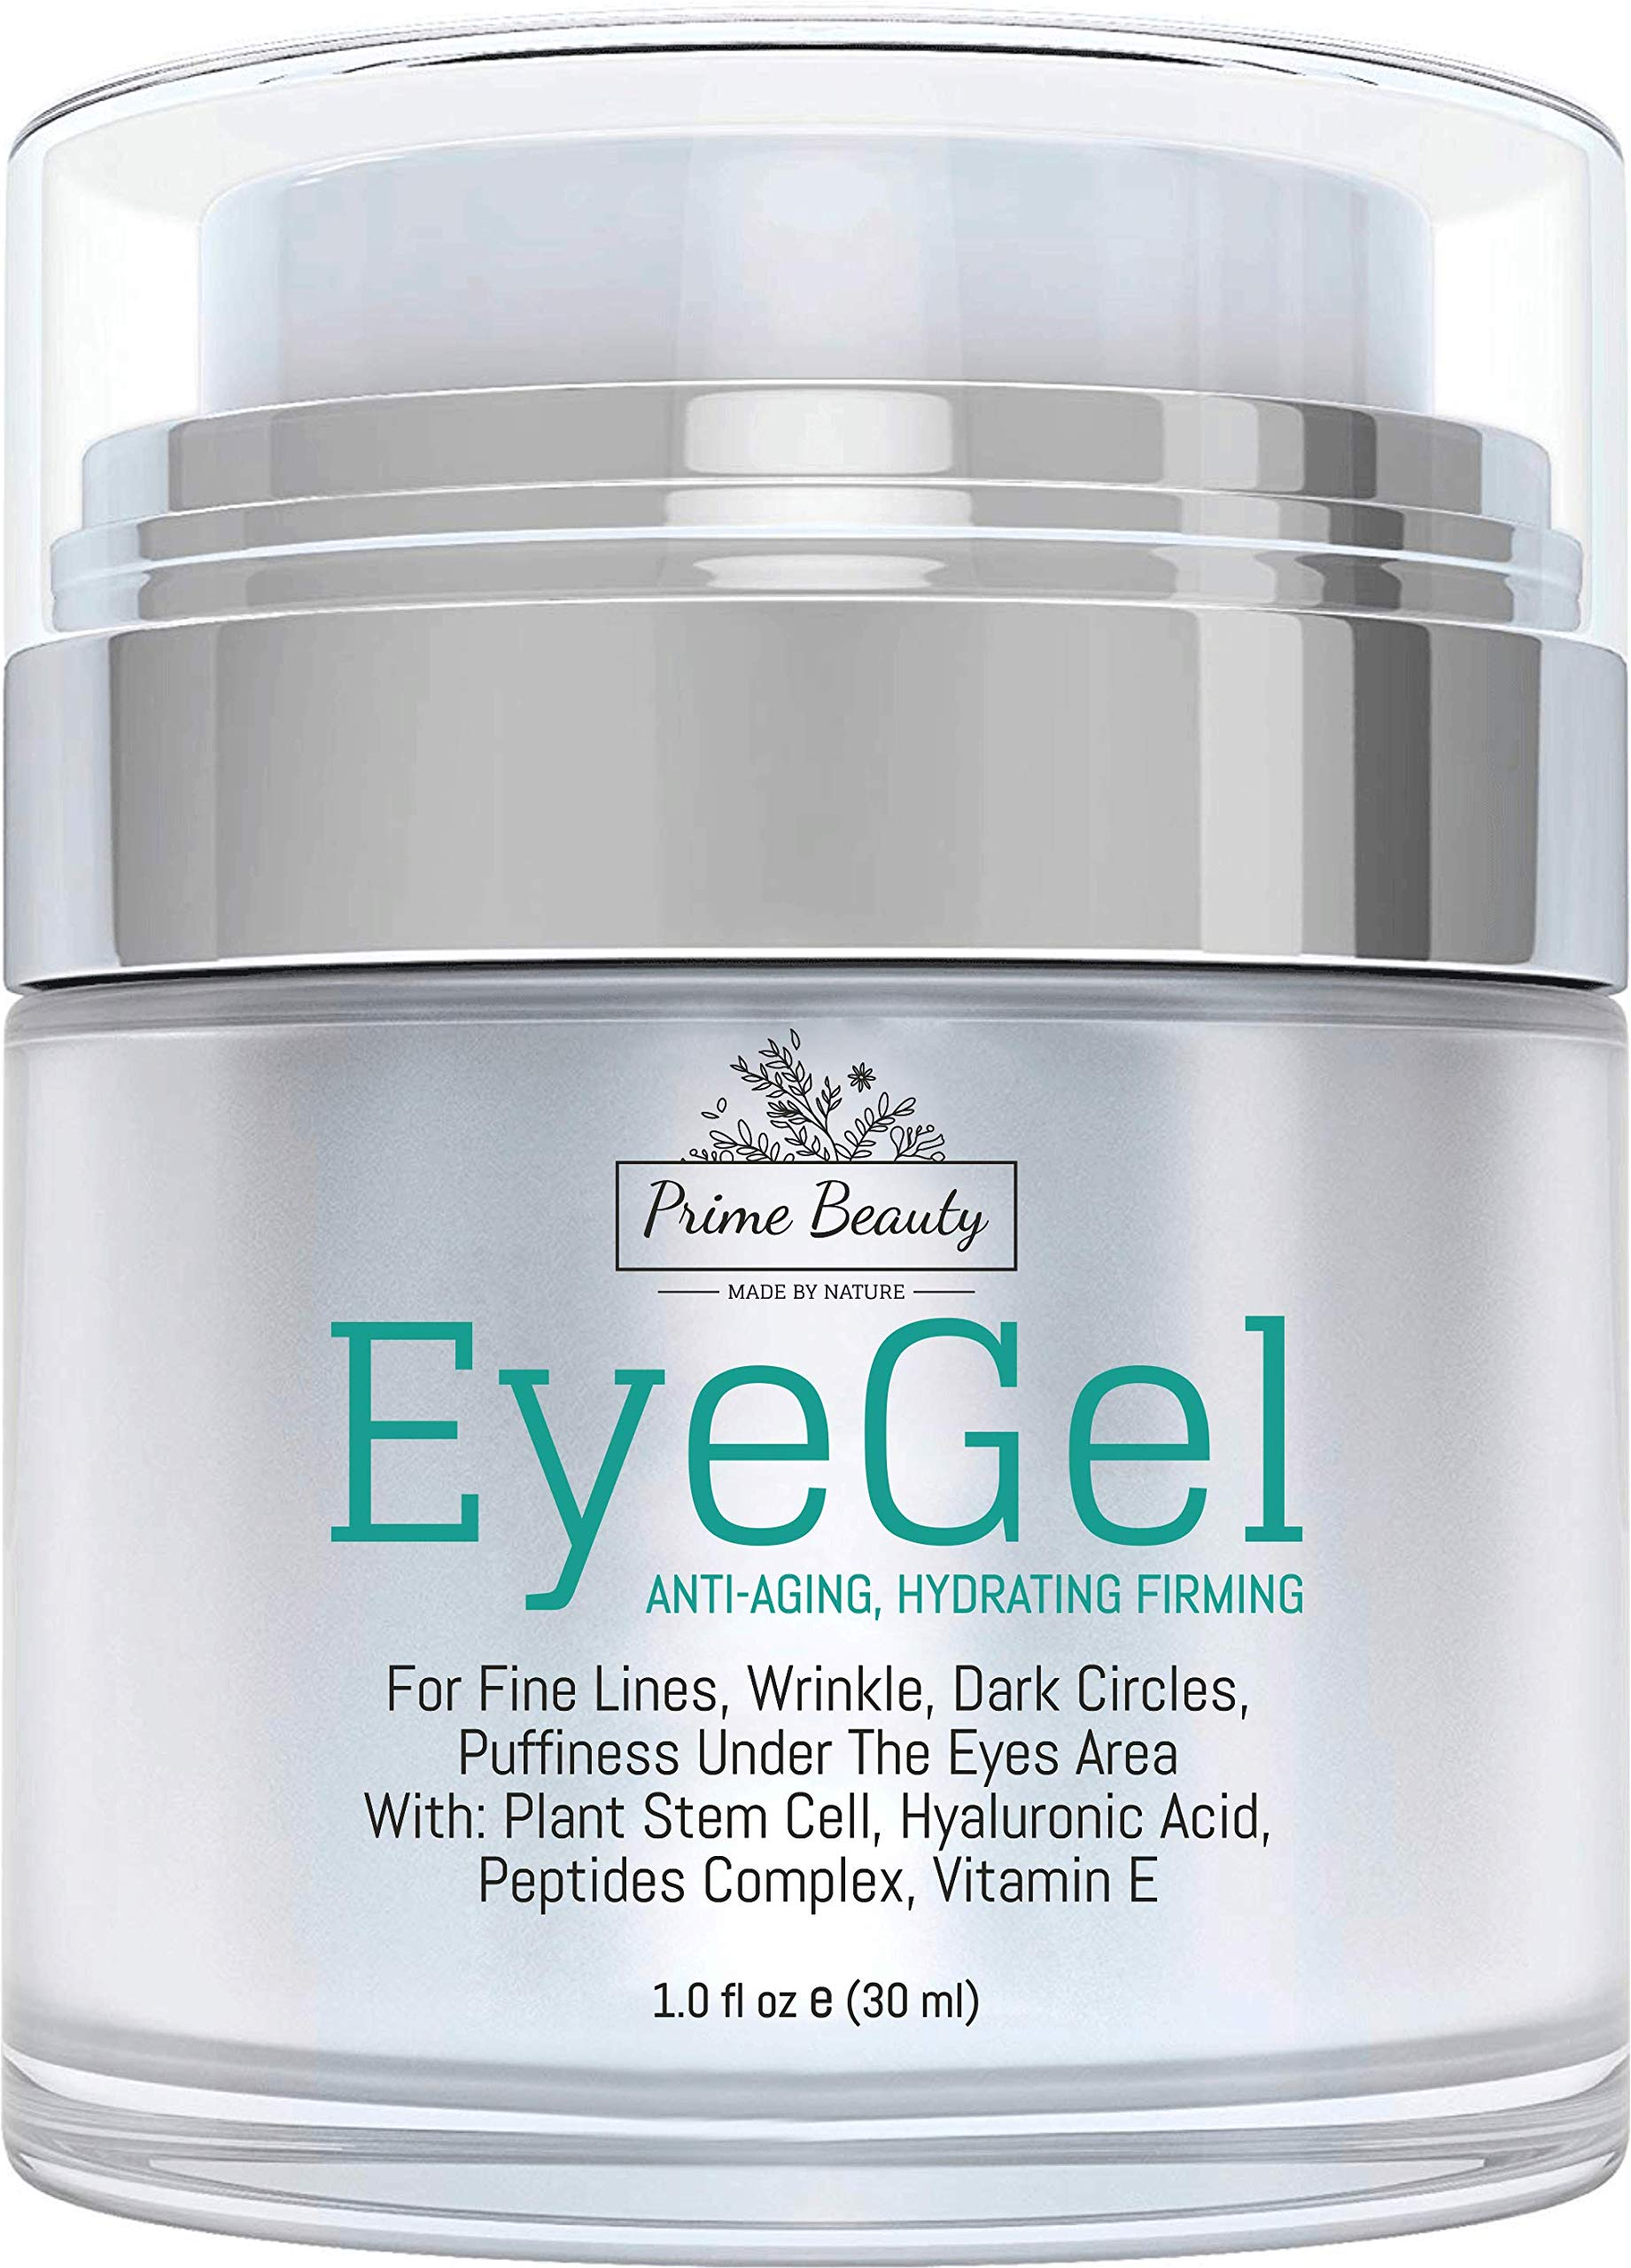 Prime Beauty - Eye Gel - Puffiness, Wrinkles, Bags, Fine Lines, Dark Circles Under and Around Eyes With Hyaluronic Acid, Jojoba Oil, Peptides, Organic Anti Aging Blend for Men & Women by Prime Beauty